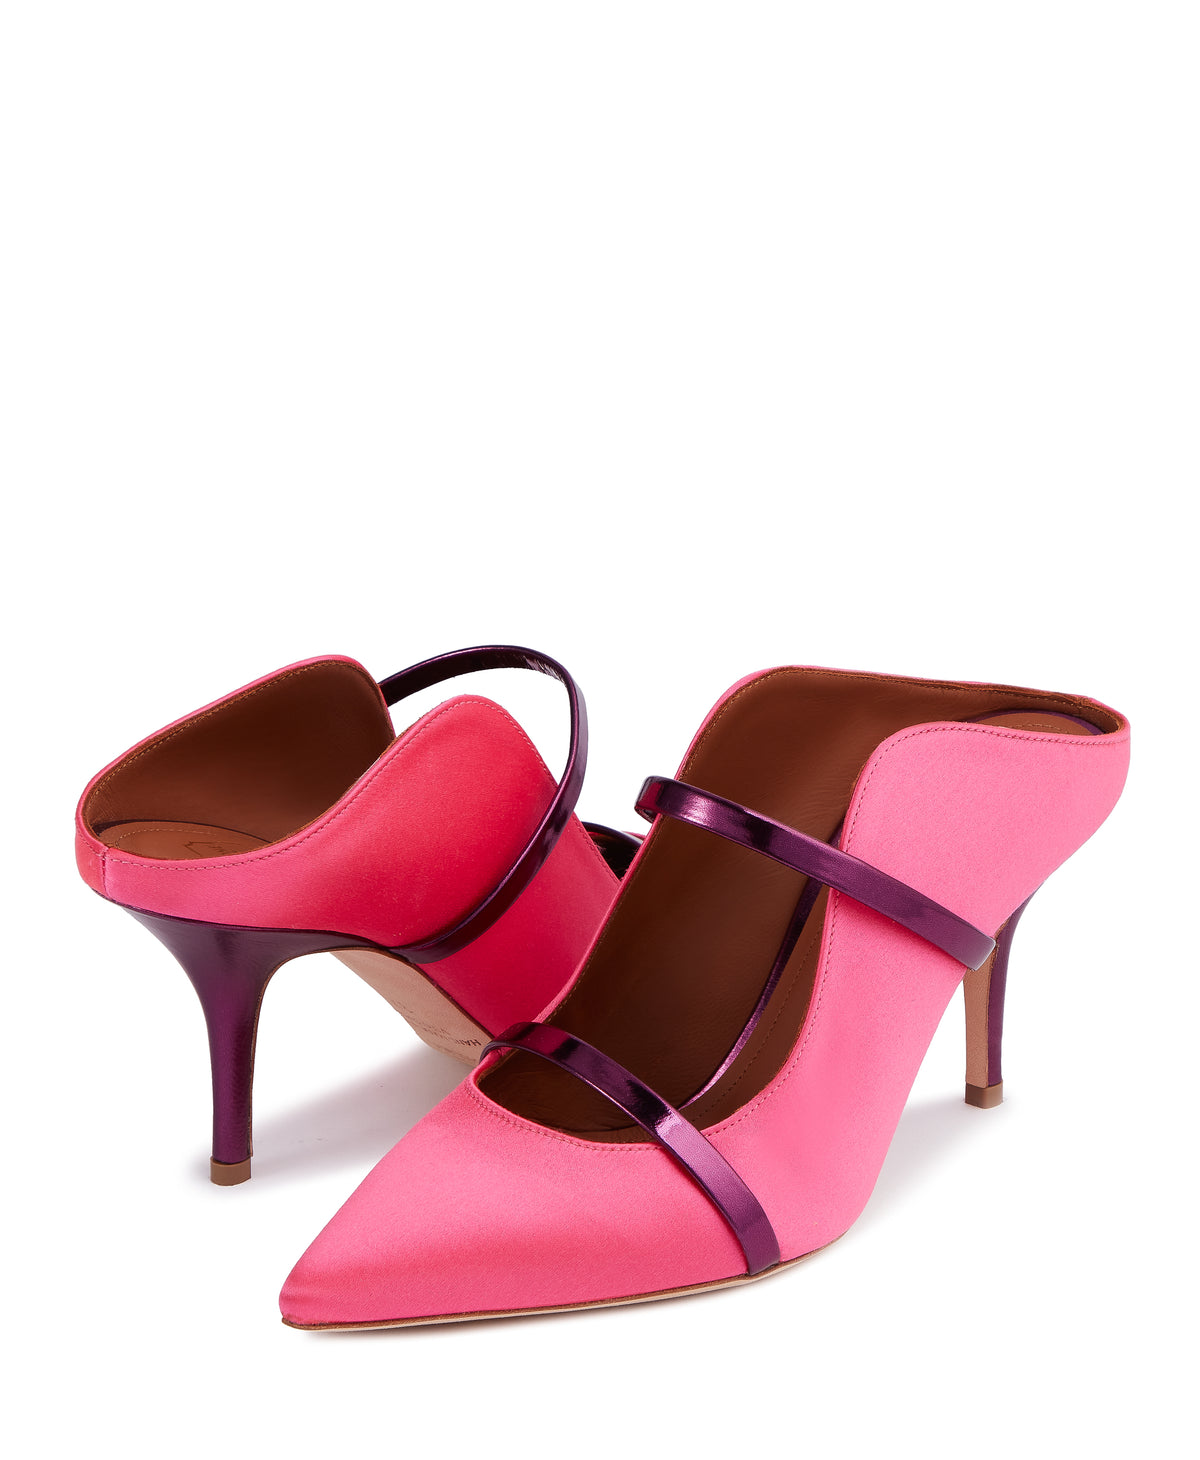 Women's Pink Satin Designer Mules With Stiletto Heel Malone Souliers